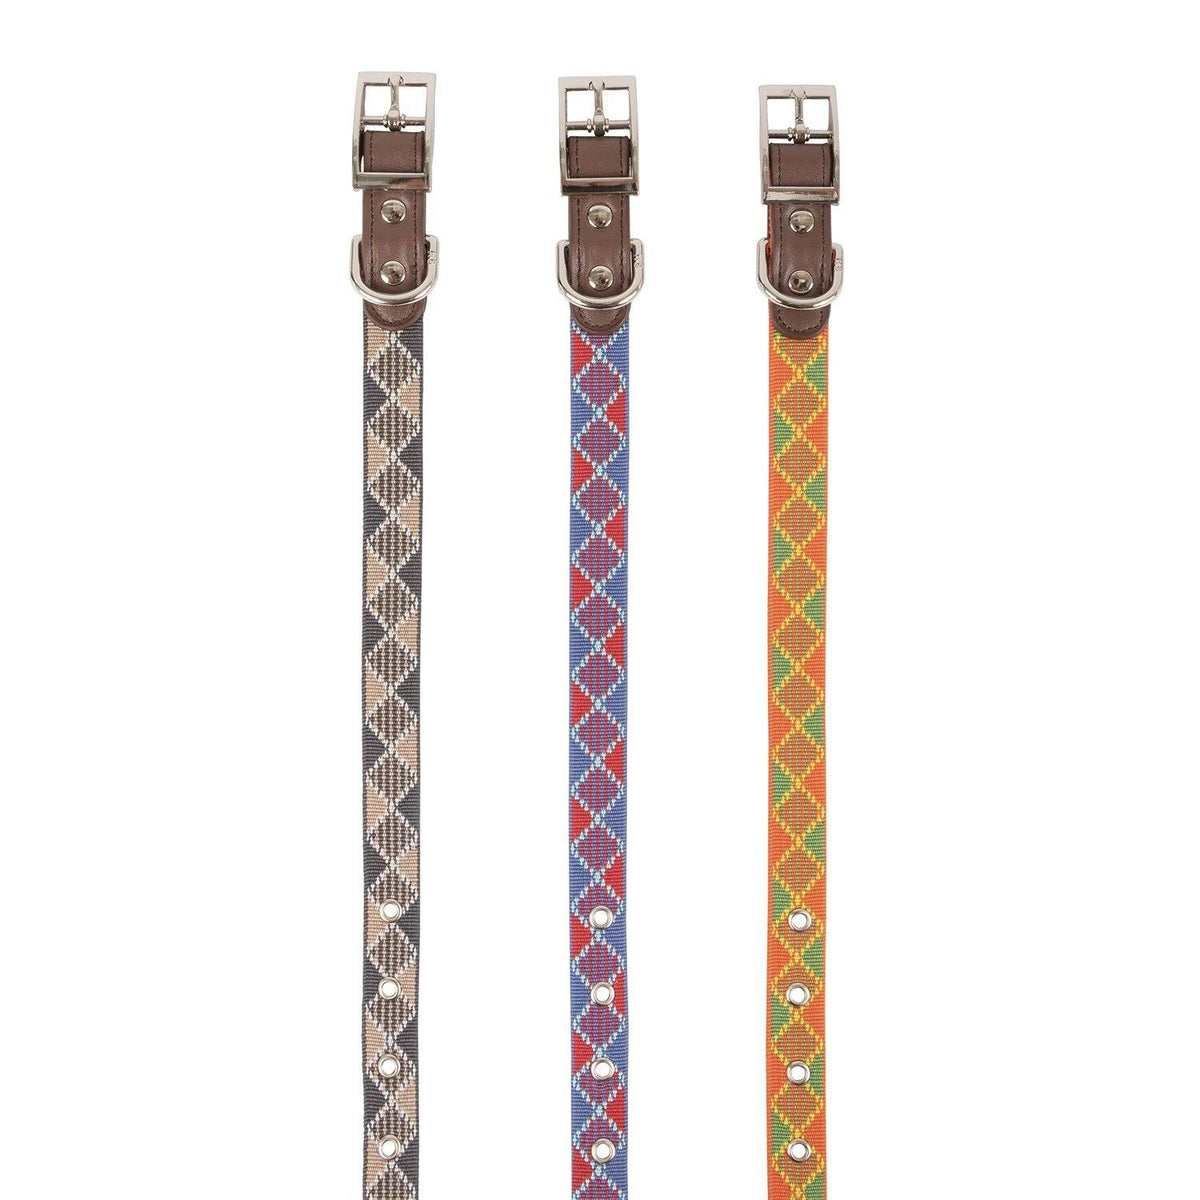 Collar - New! Plaid Dog Collar